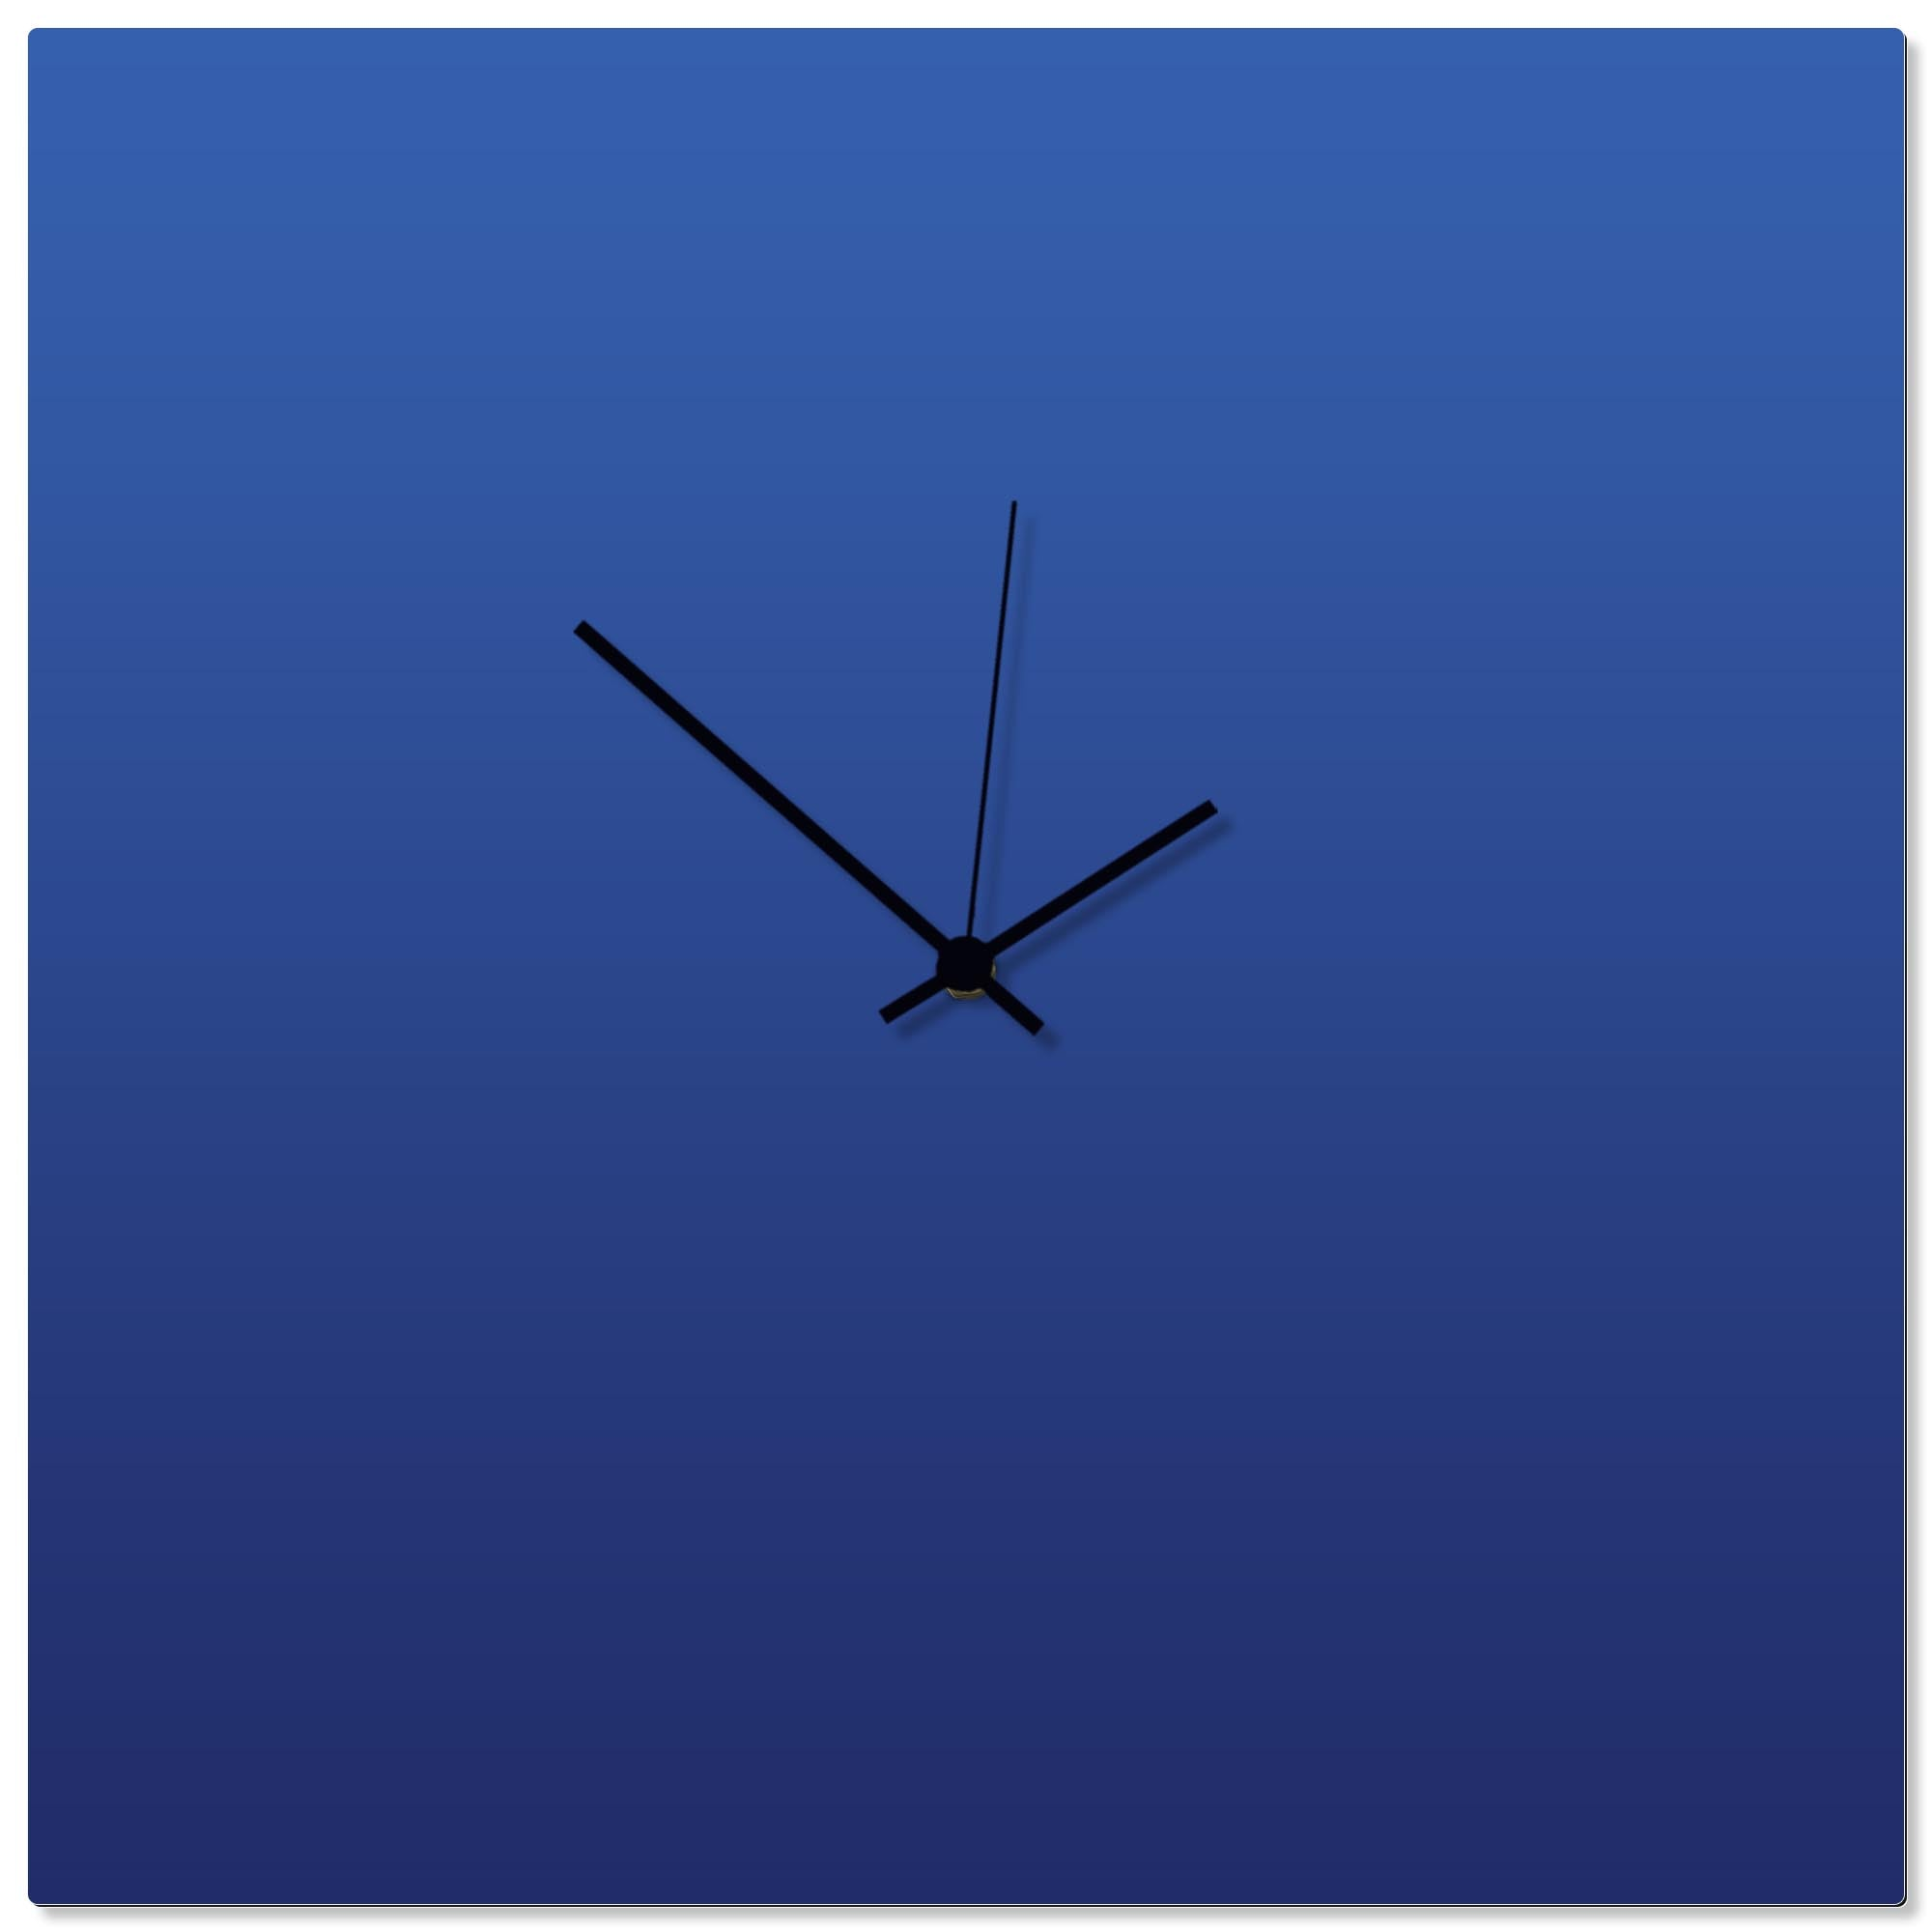 Blueout Black Square Clock Large by Adam Schwoeppe - Contemporary Clock on Aluminum Polymetal